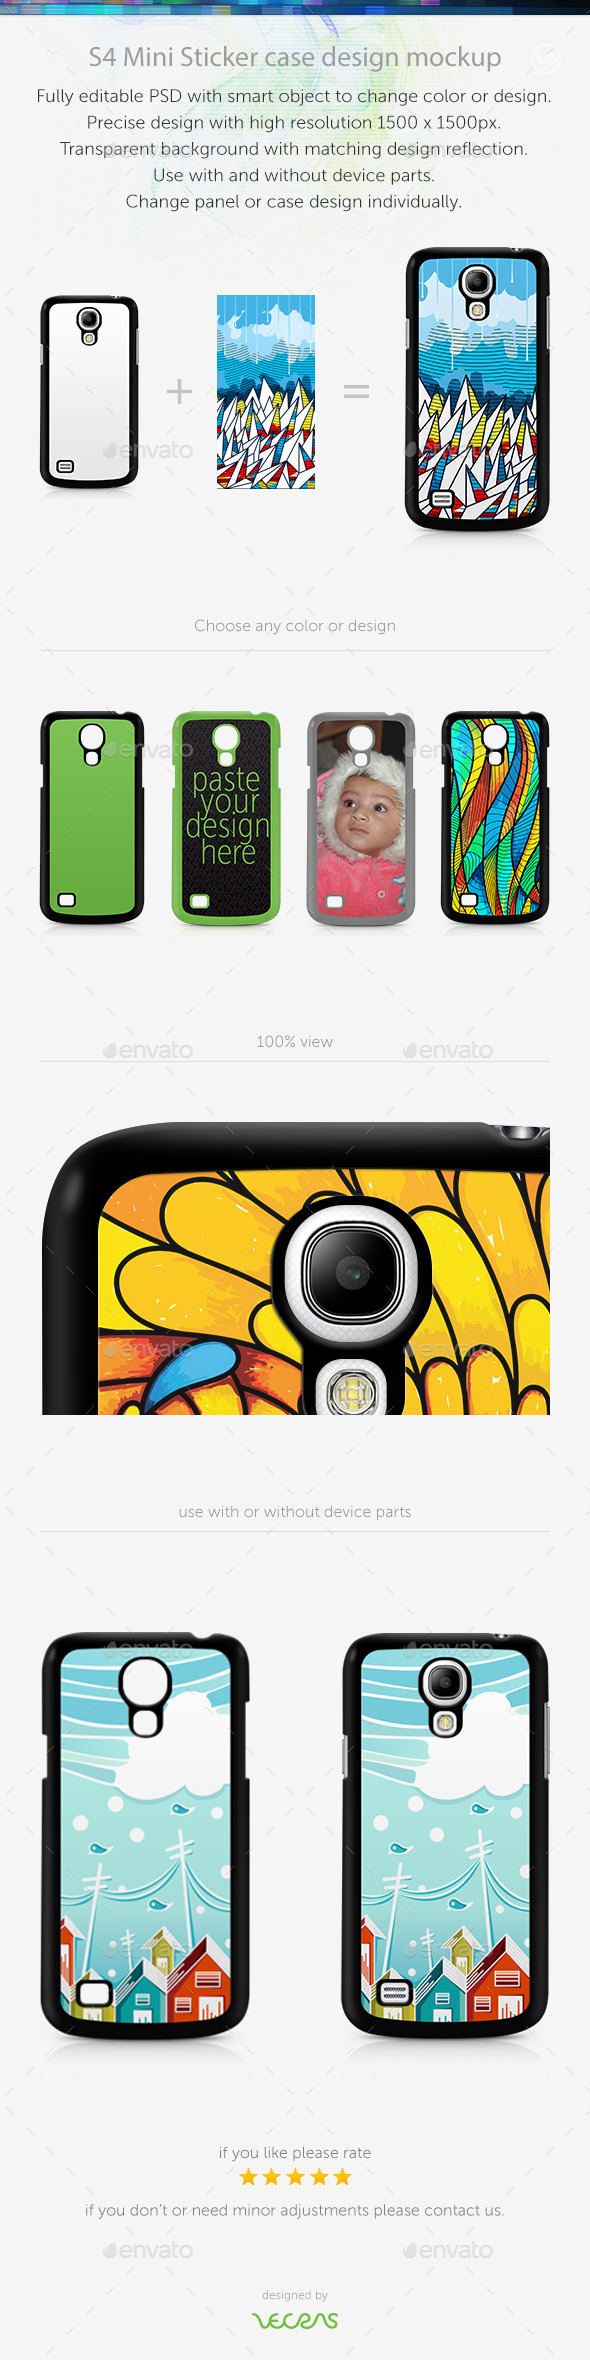 S4 Mini Sticker Case Design Mockup